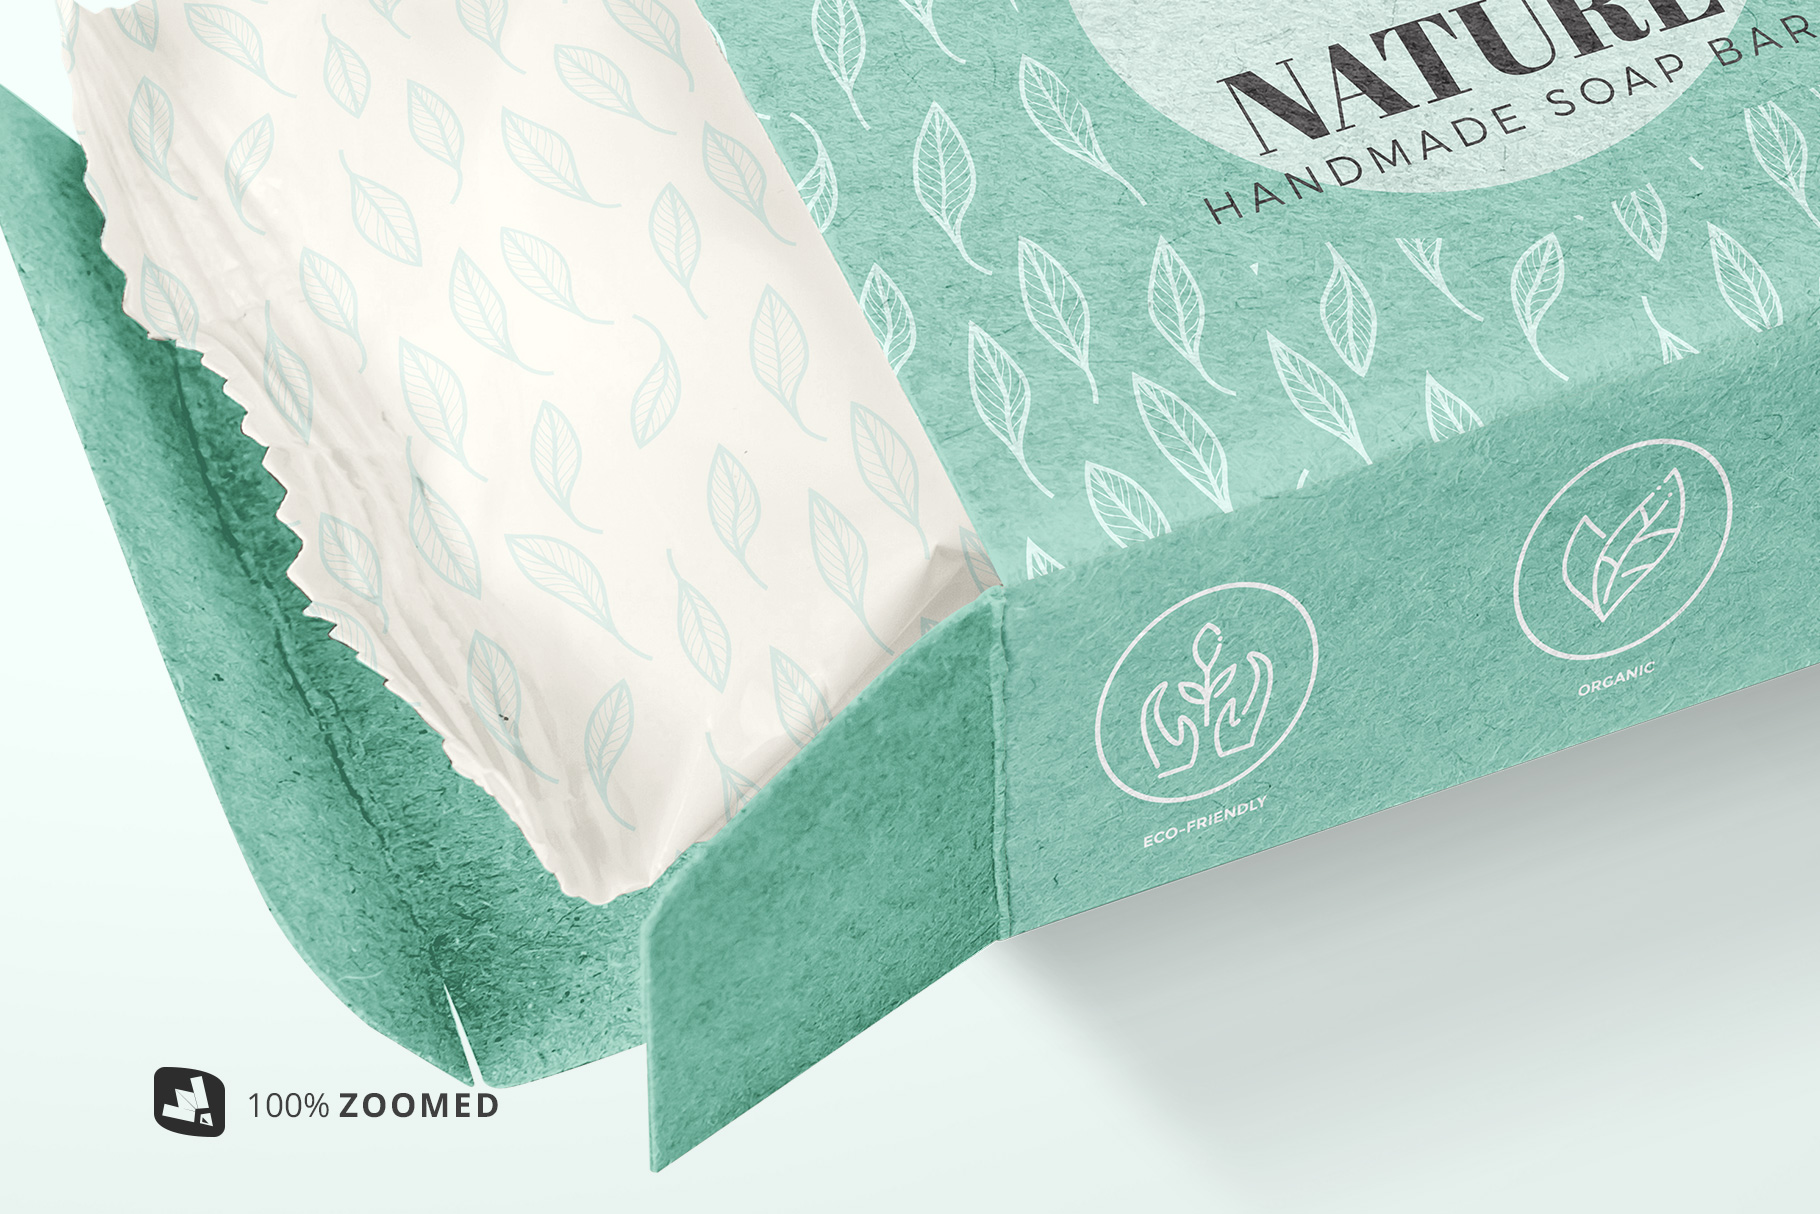 zoomed in image of the hand made soap bar packaging mockup